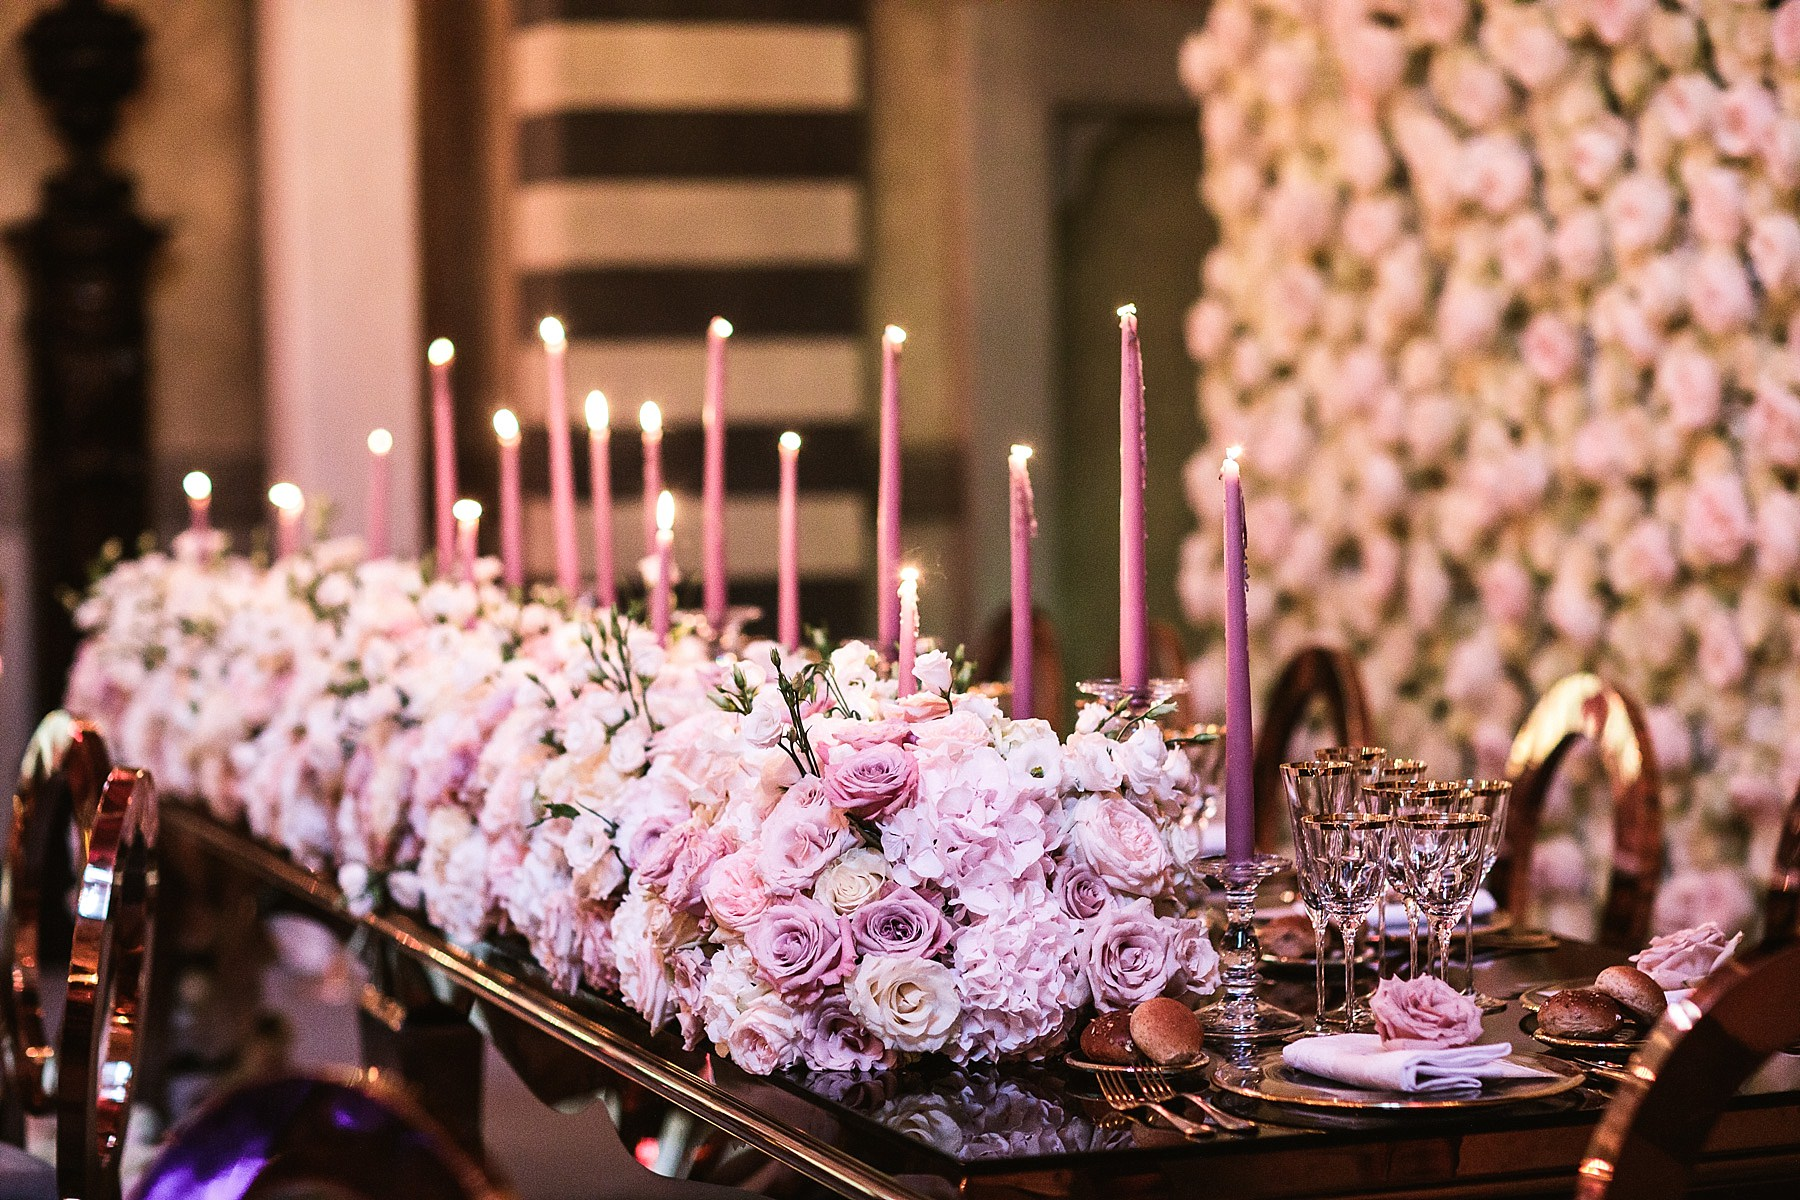 Decors - Destination wedding at Four Seasons Hotel Florence